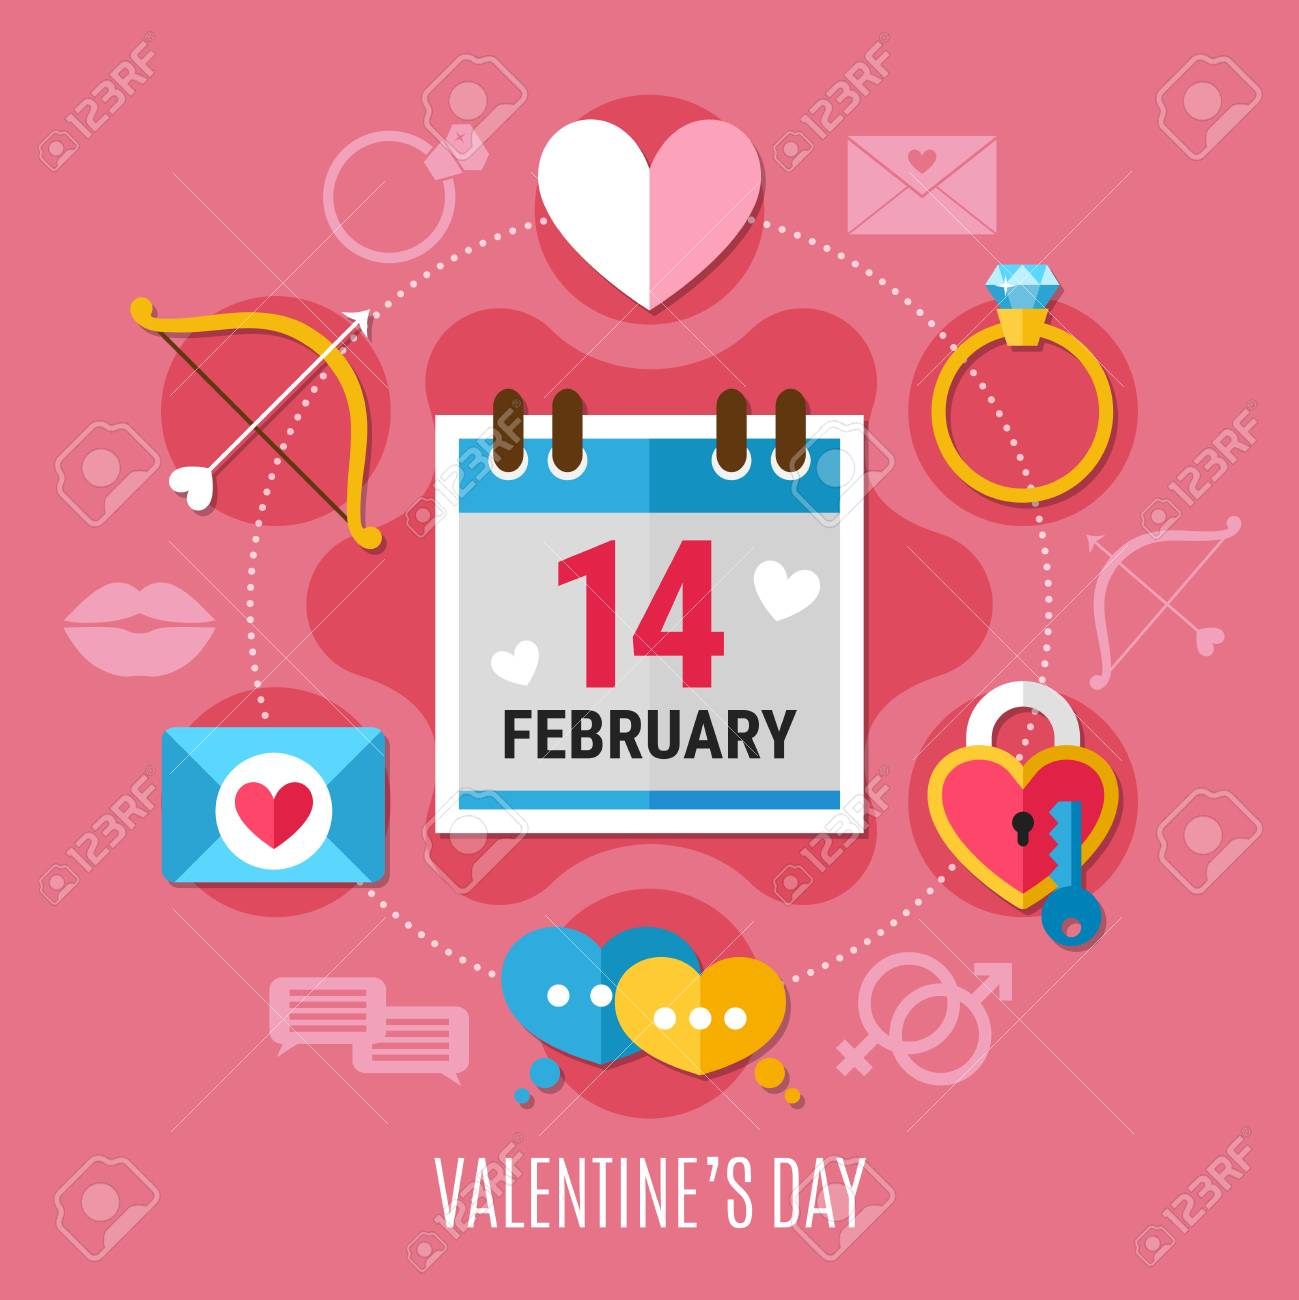 Colored And Flat Valentines Day Composition With Romantic Elements